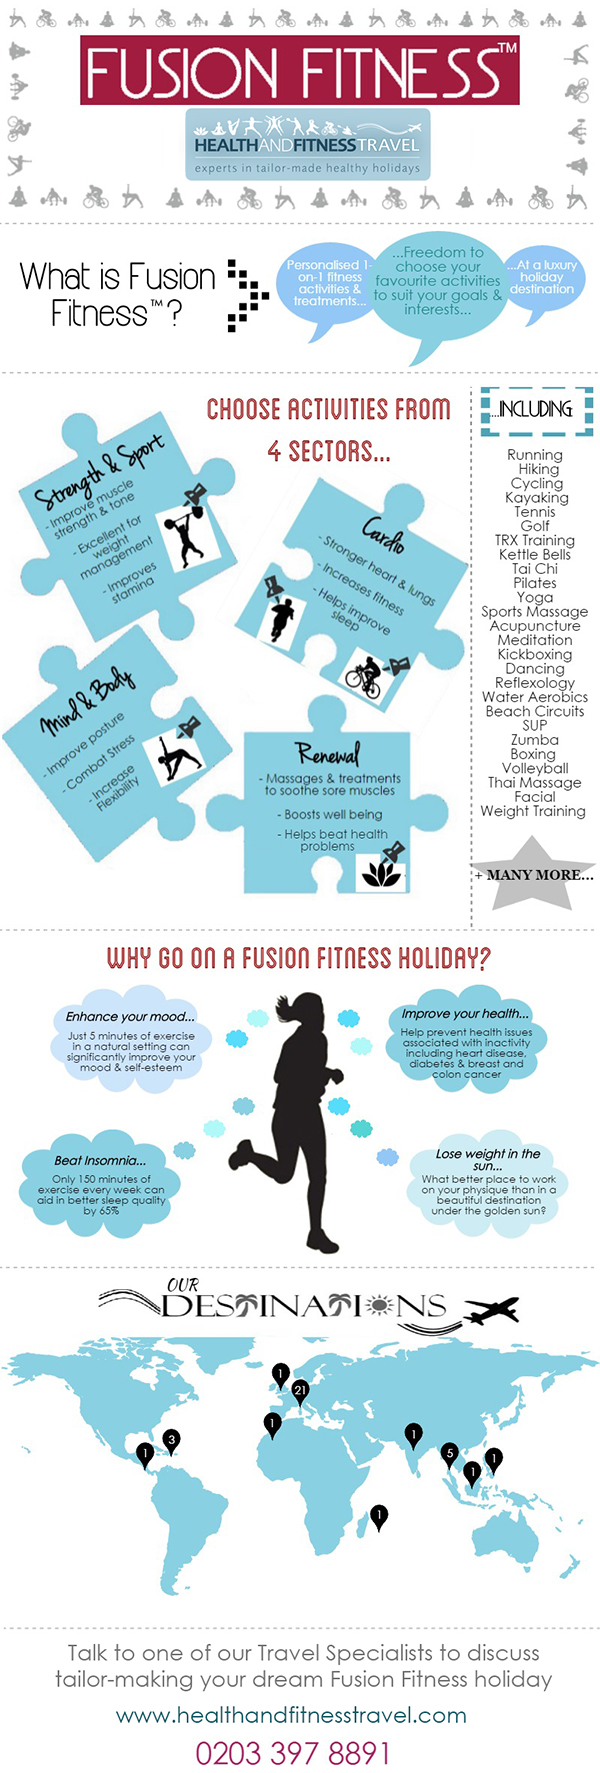 Fusion Fitness Infographic